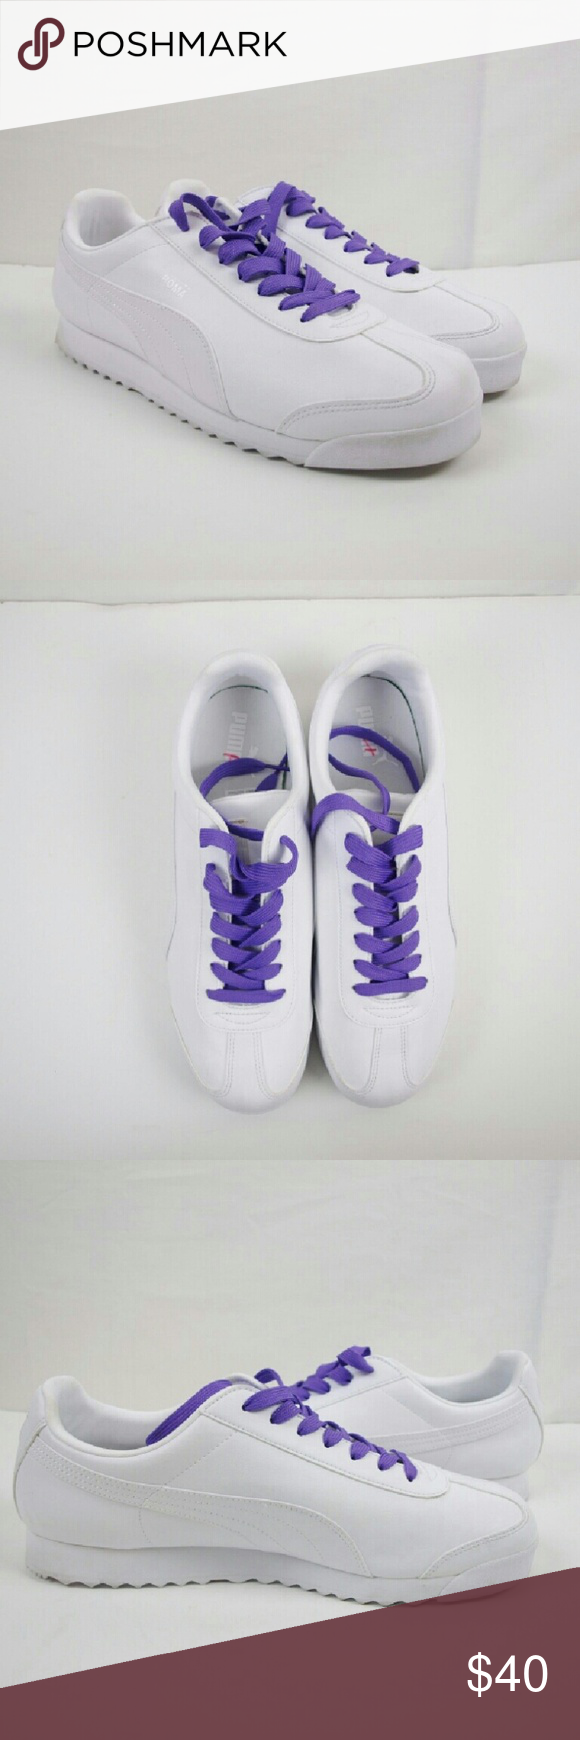 8ad4c205a7ce Womens Puma Roma Basic Retro Leather Shoes Like new! Excellent Condition    only worn once for about an hour. Has light dirt on back sole from the  limited ...